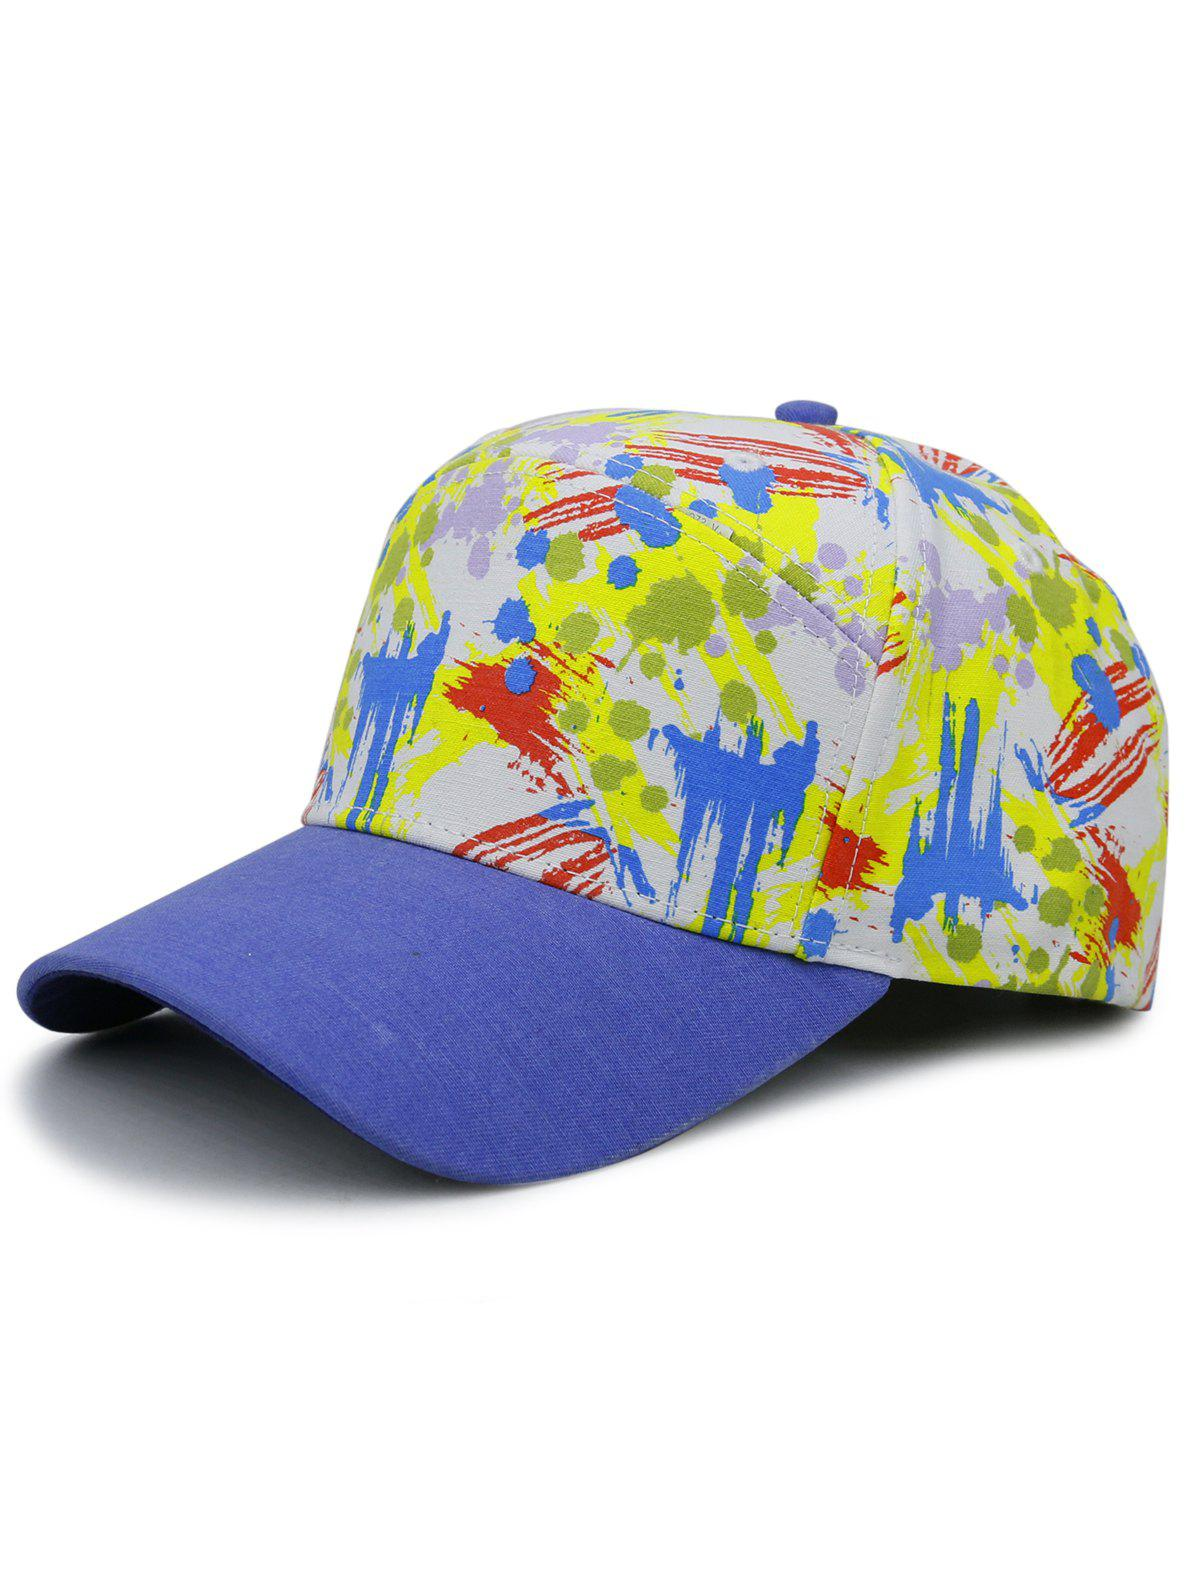 Fancy Unique Painting Pattern Adjustable Snapback Hat